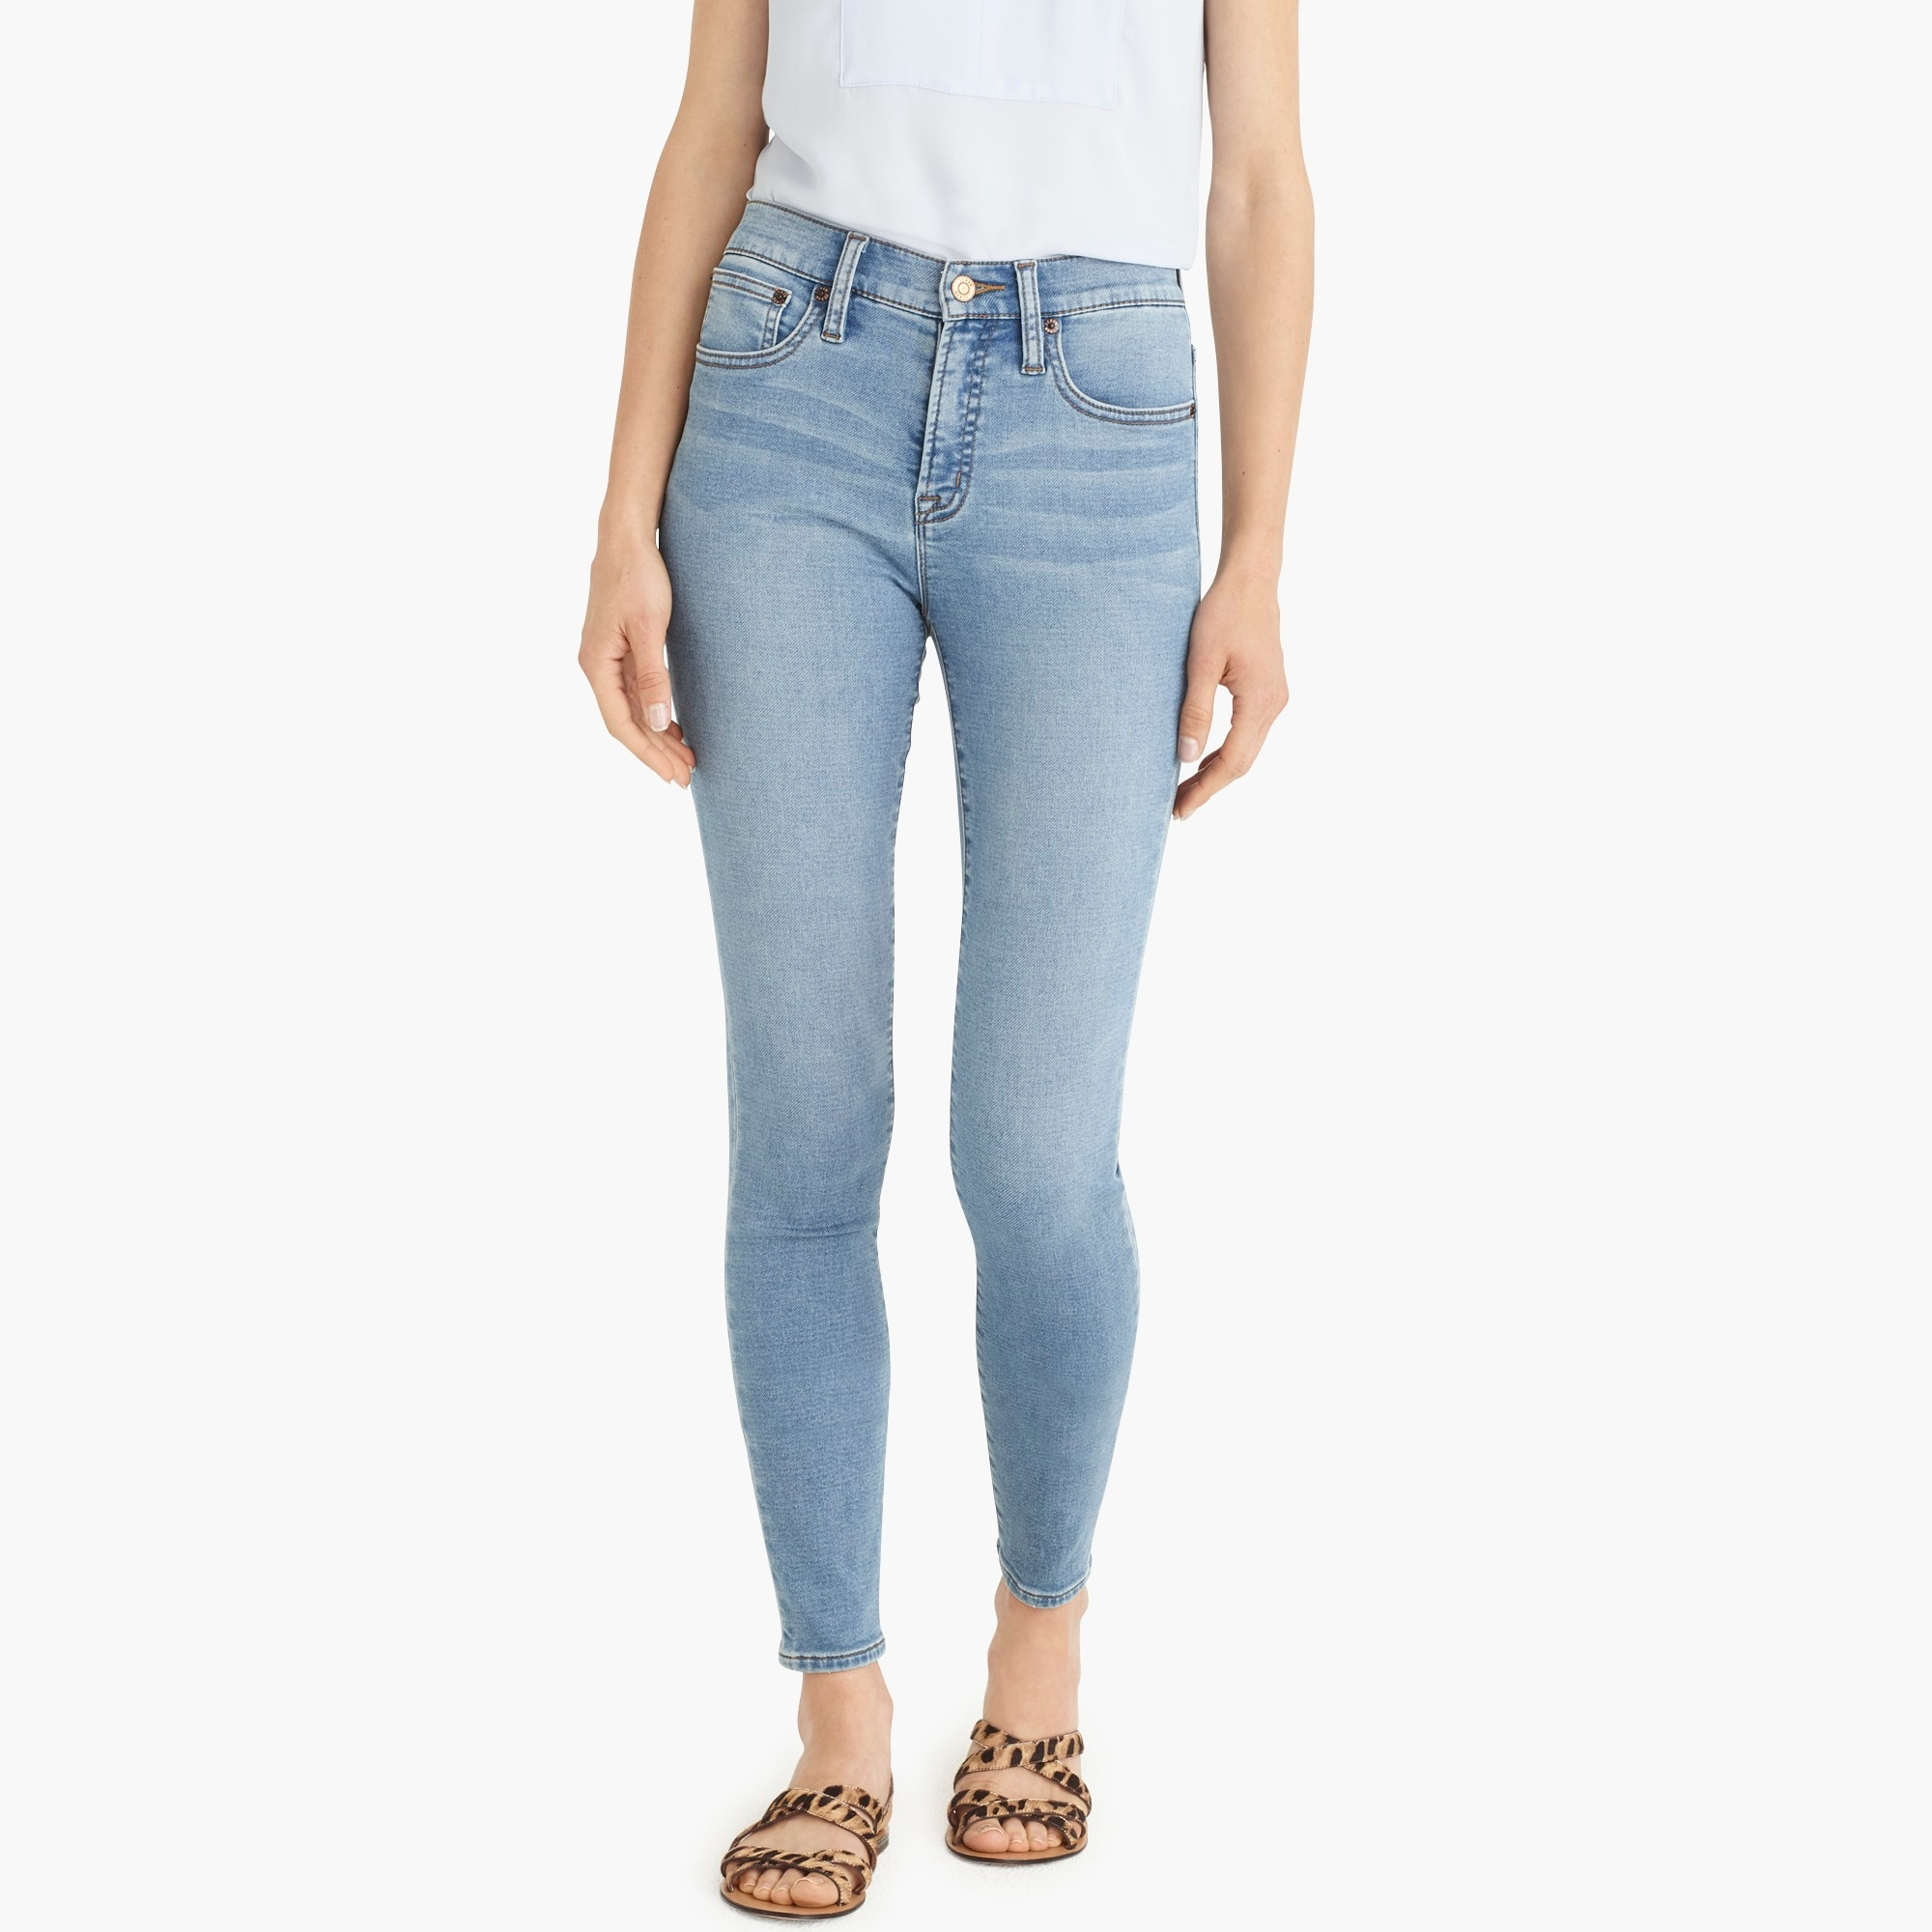 "Image 1 for Tall 9"" high-rise jeggings in light blue wash"